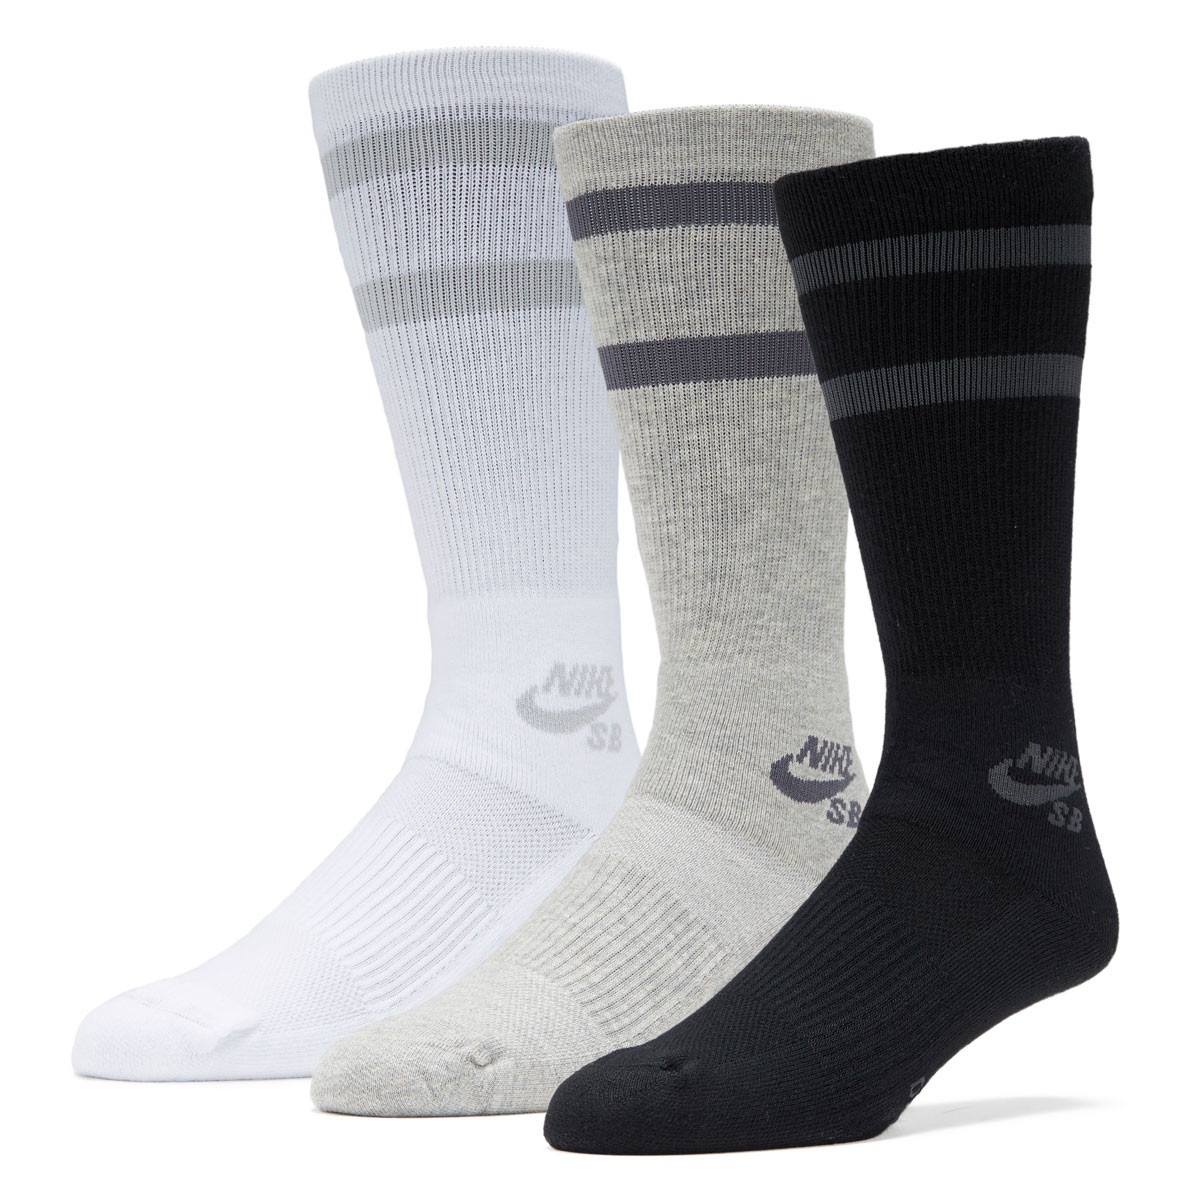 c48a81441f6e4e Nike SB 3 Pack Crew Socks - Multi Color